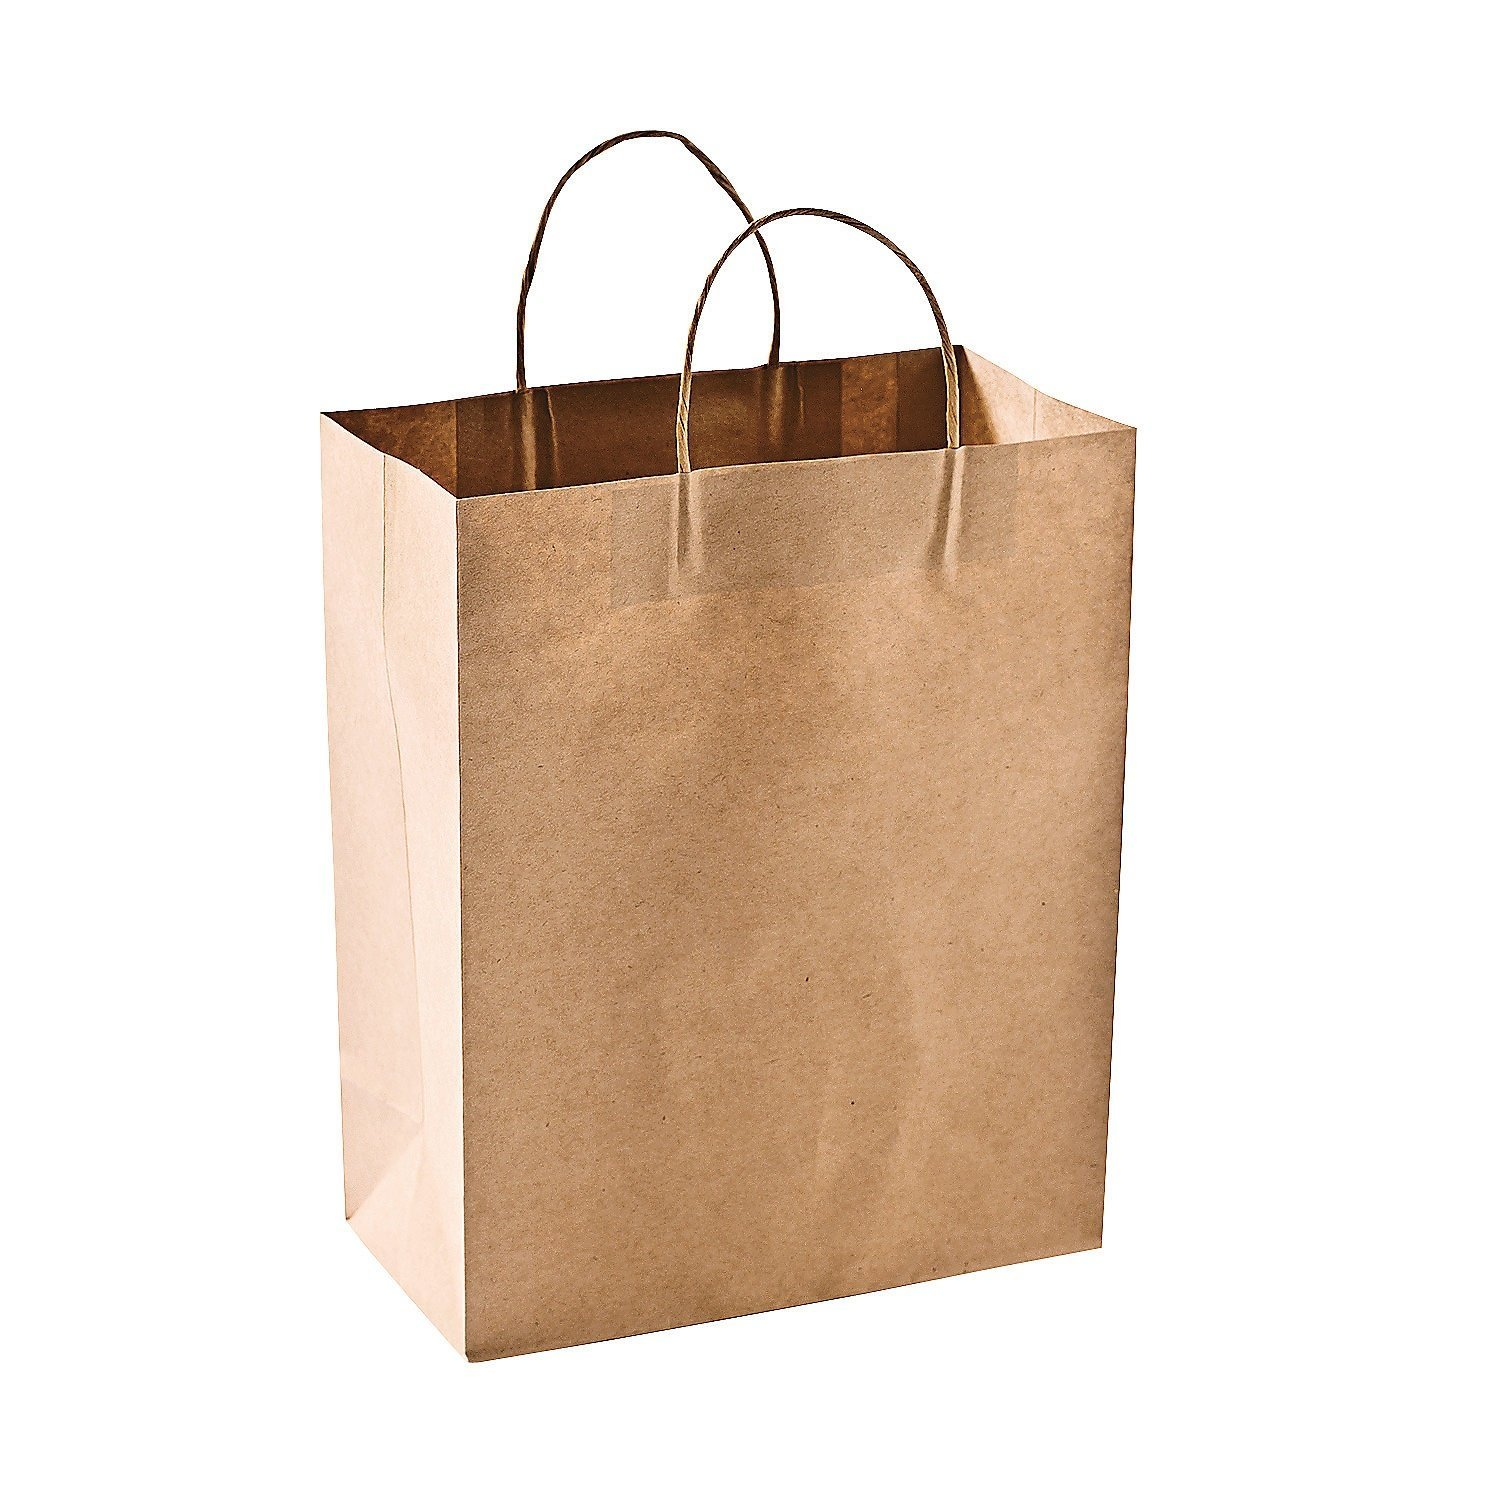 Paper bag viva media com sg for Handles for bags craft